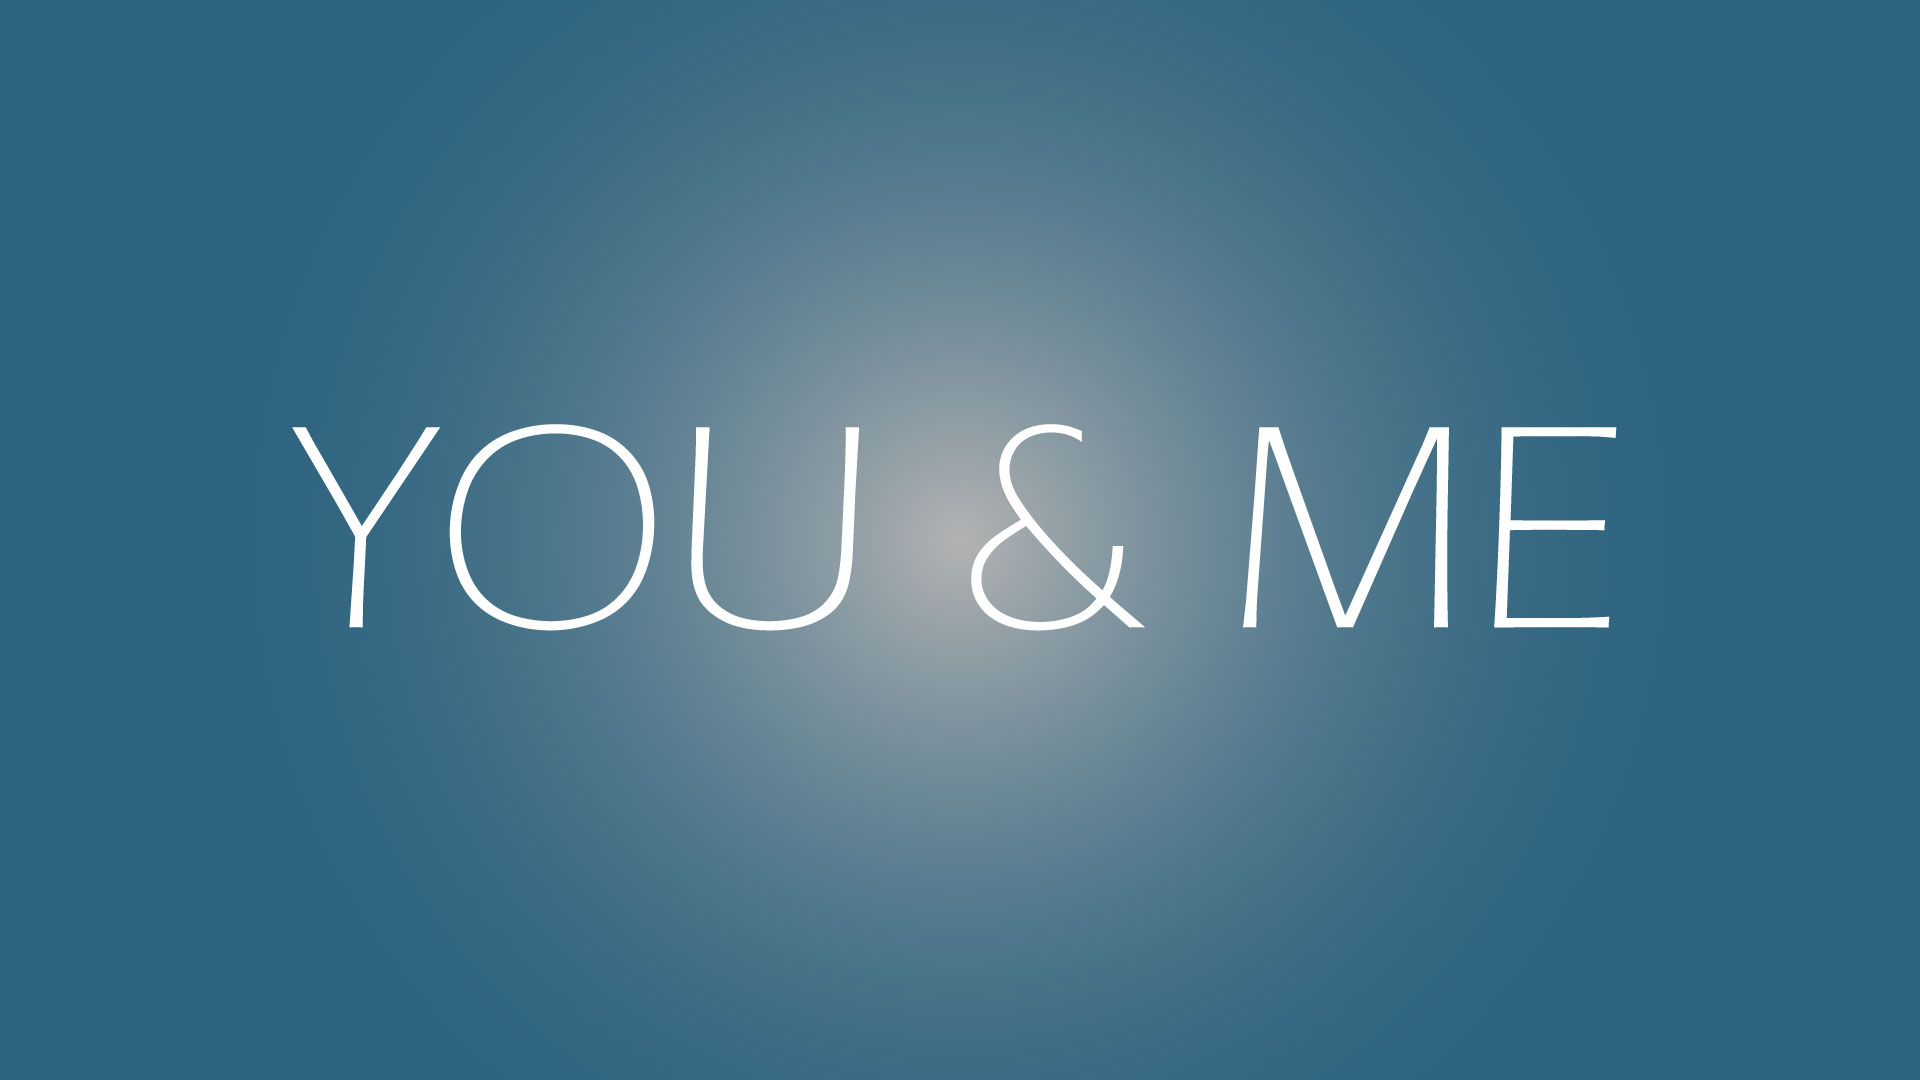 You and Me clip art